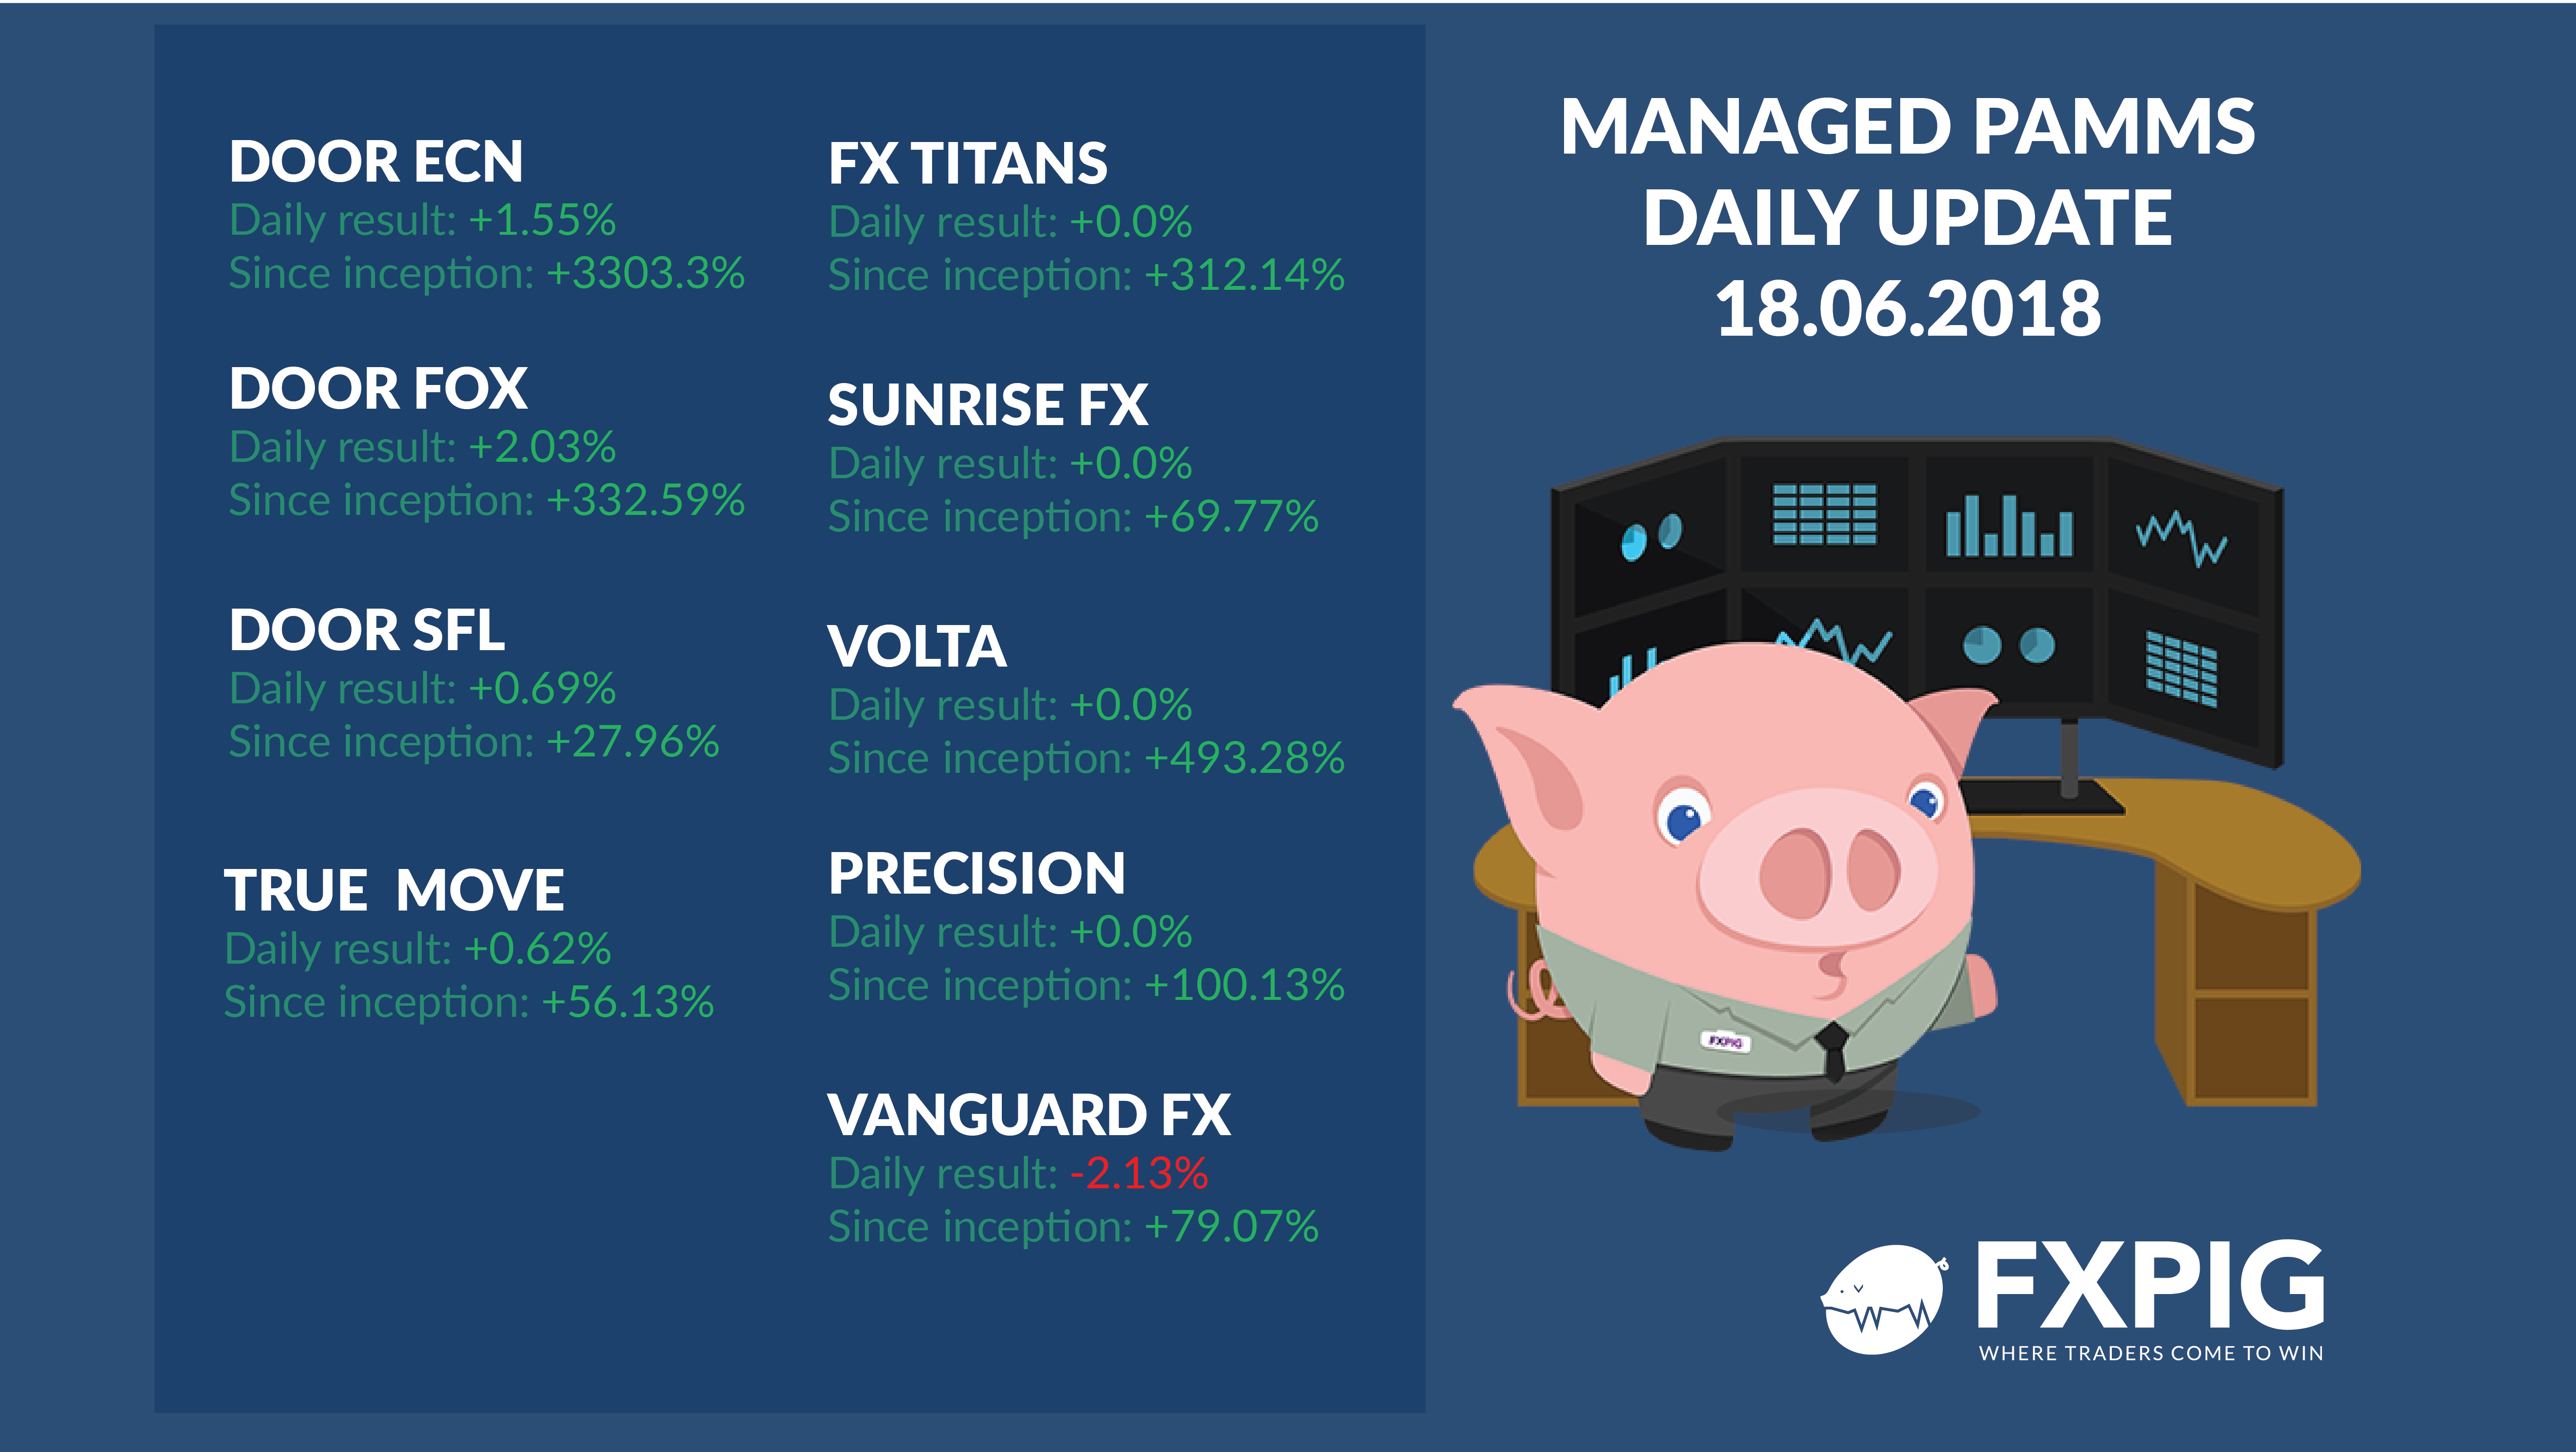 FOREX_Daily-managed-accounts1806_FXPIG